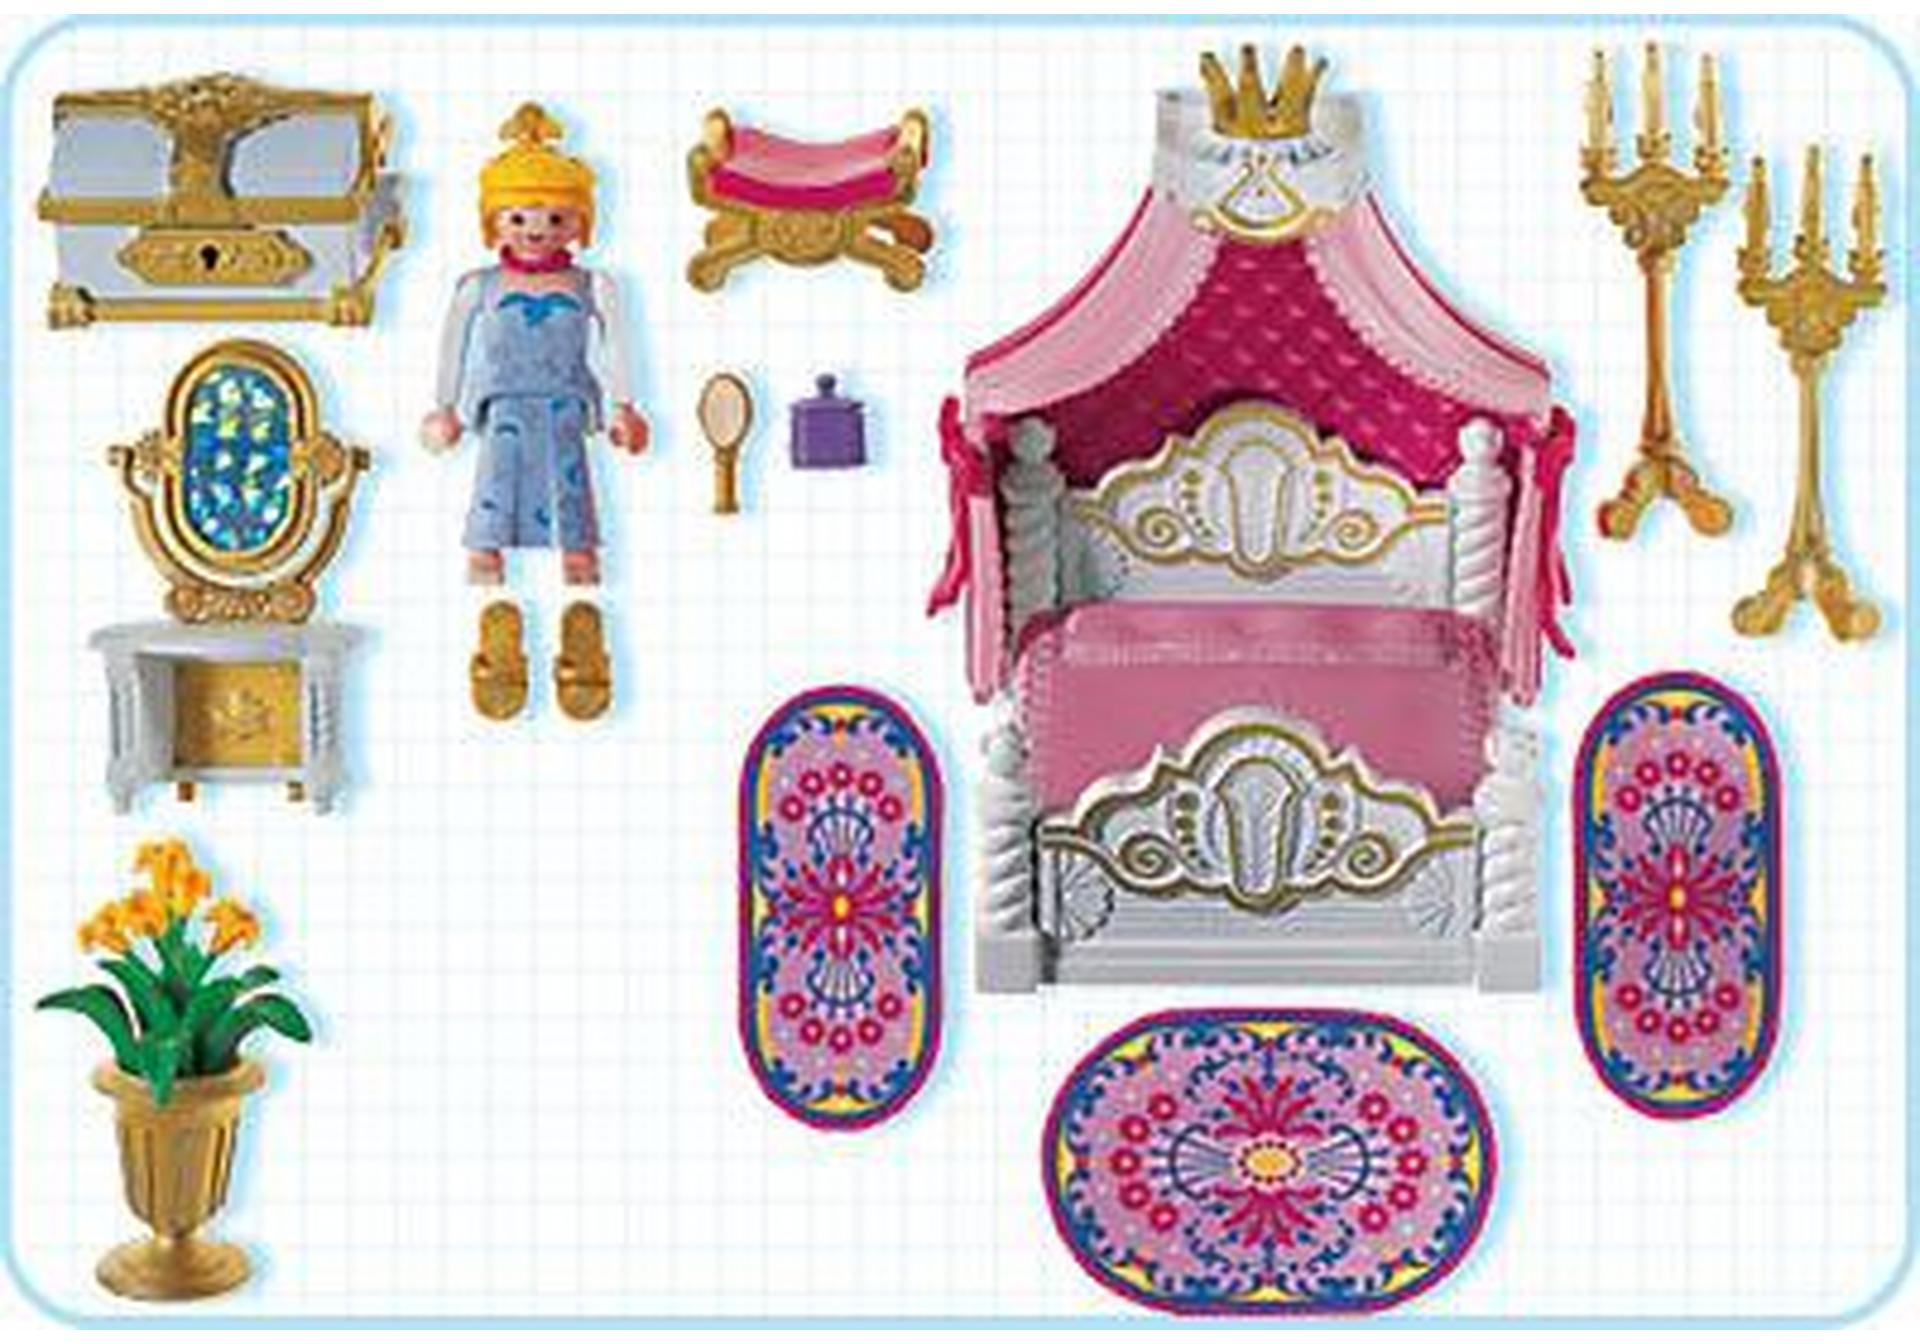 Chambre de la princesse 3020 a playmobil france for Playmobil chambre princesse